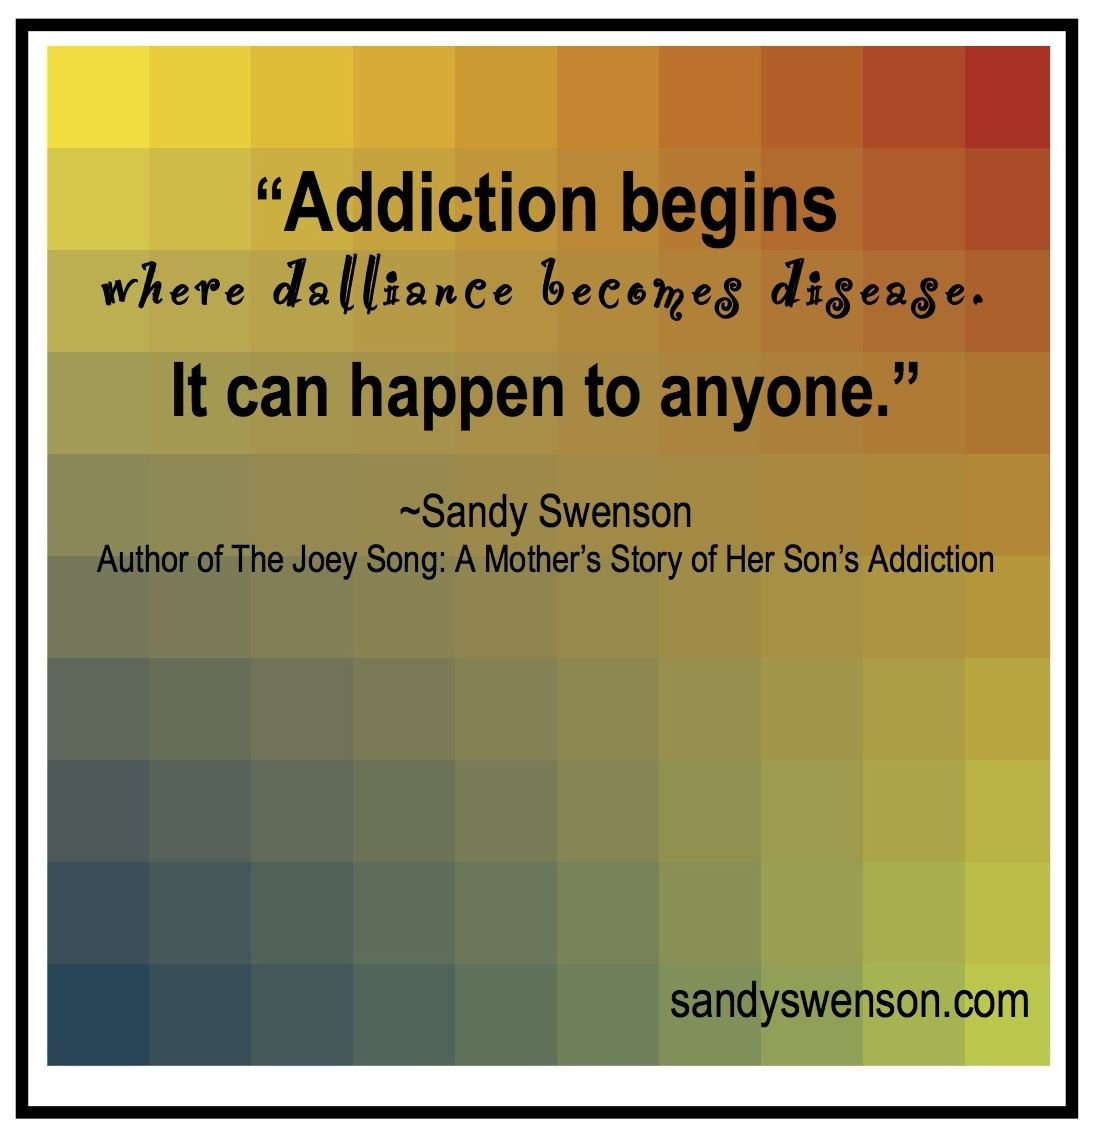 Addiction Quotes Drug Addiction Recovery Quotes Addiction Begins1  My Recovery